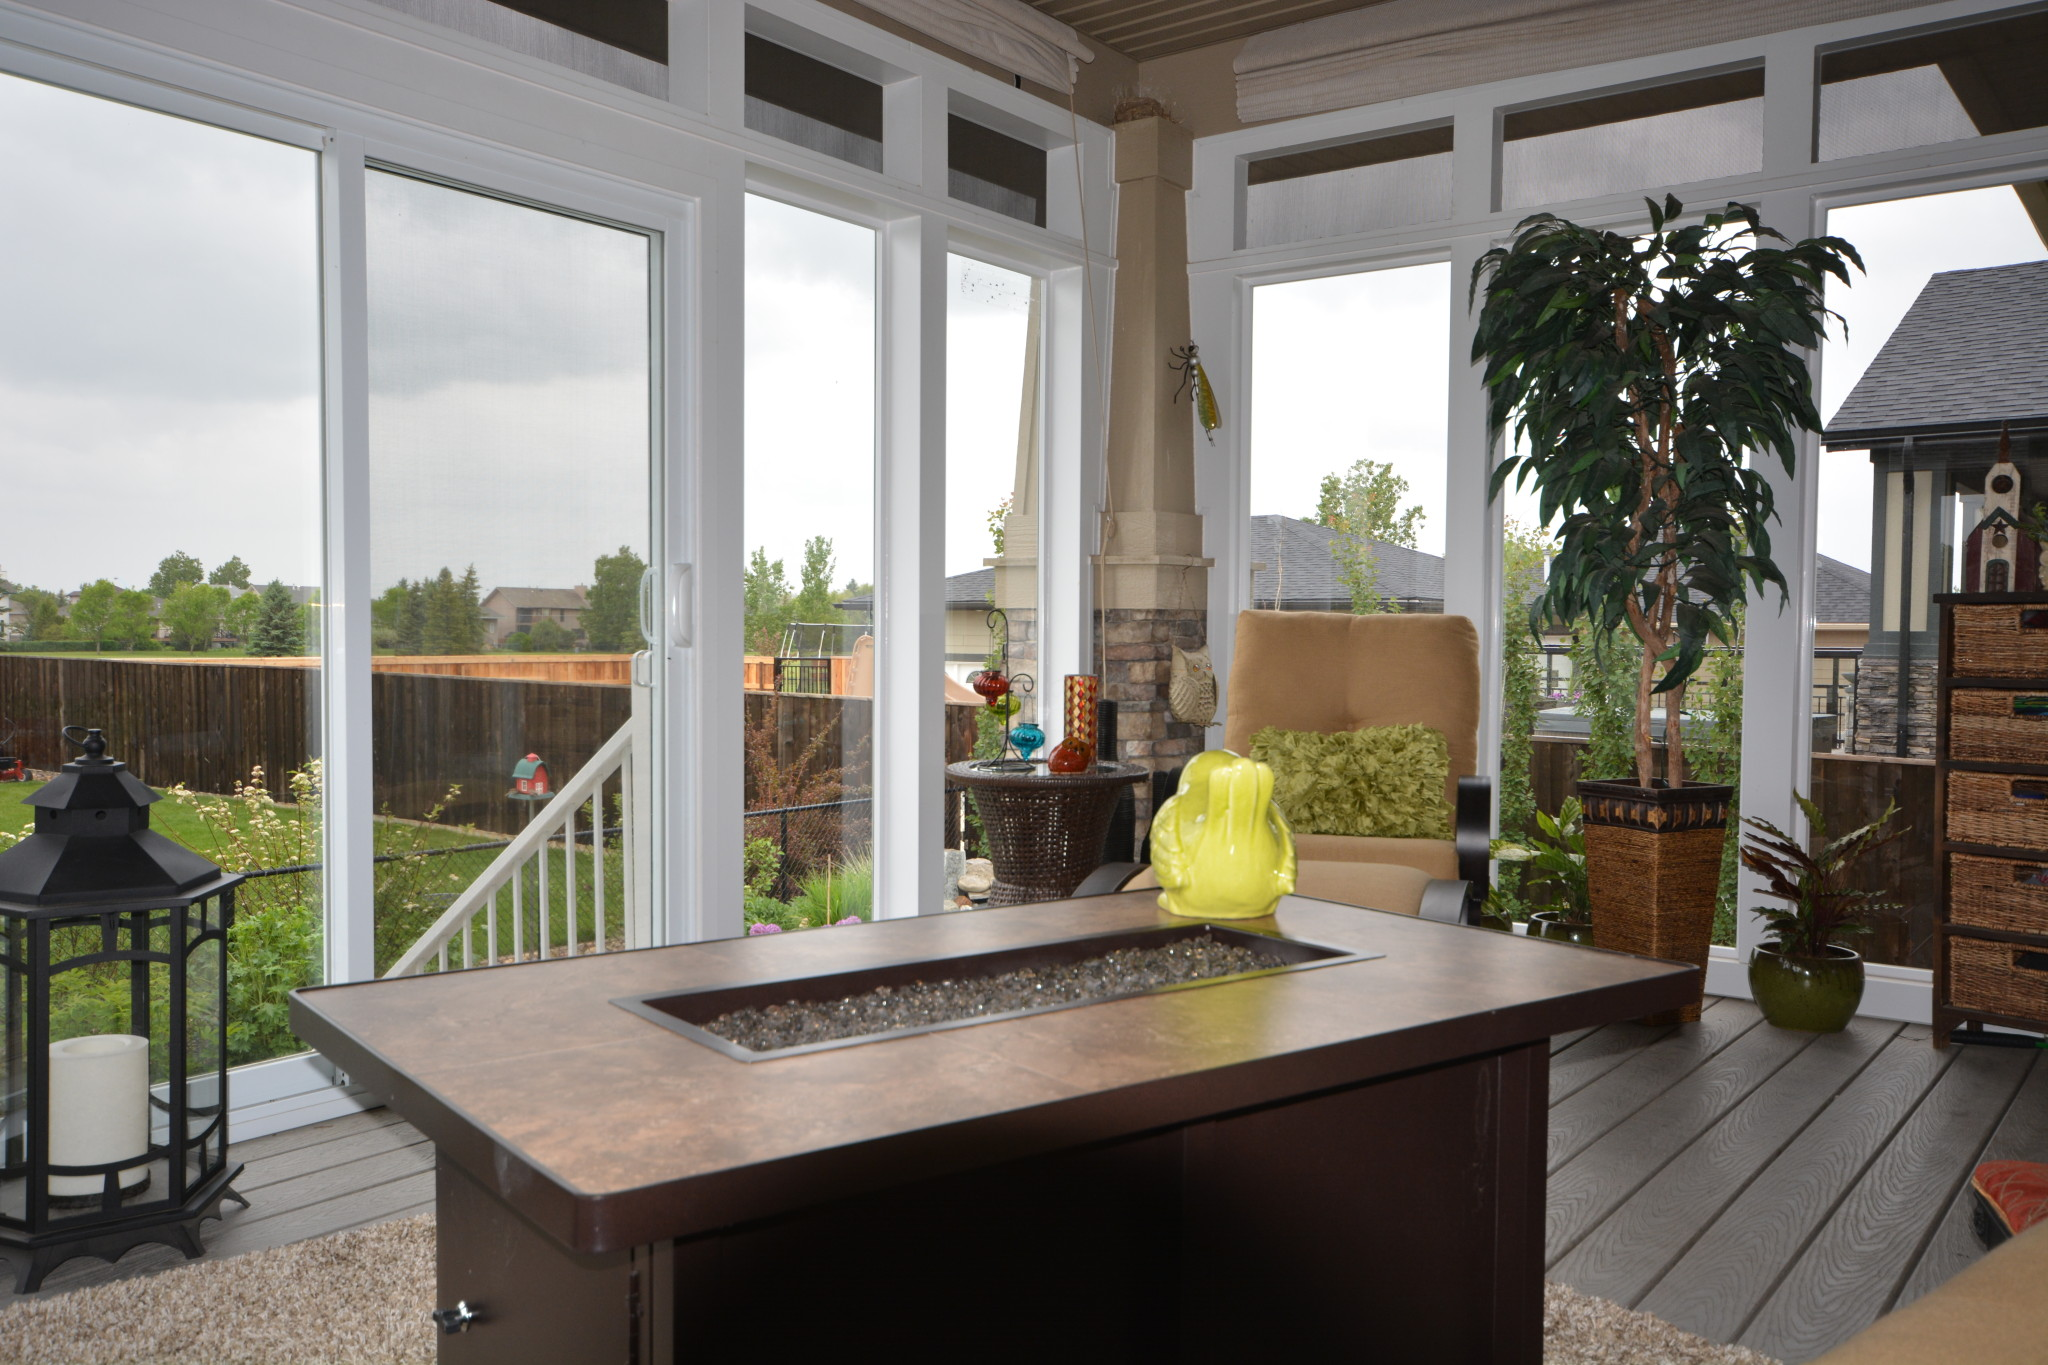 Sunroom with a fireplace in the middle, and a glass door to the backyard